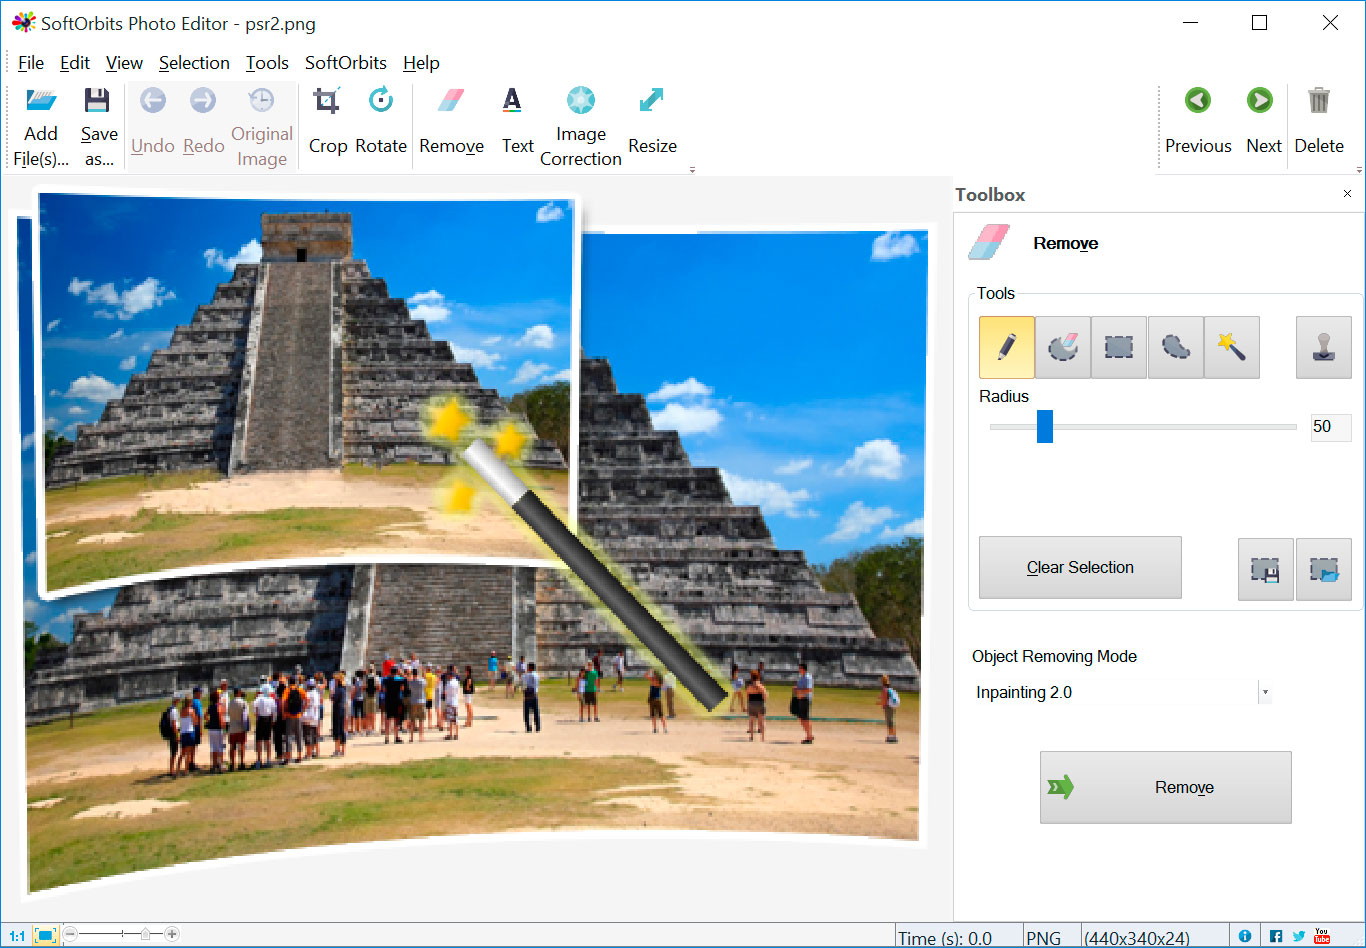 SoftOrbits Photo Editor Screenshots